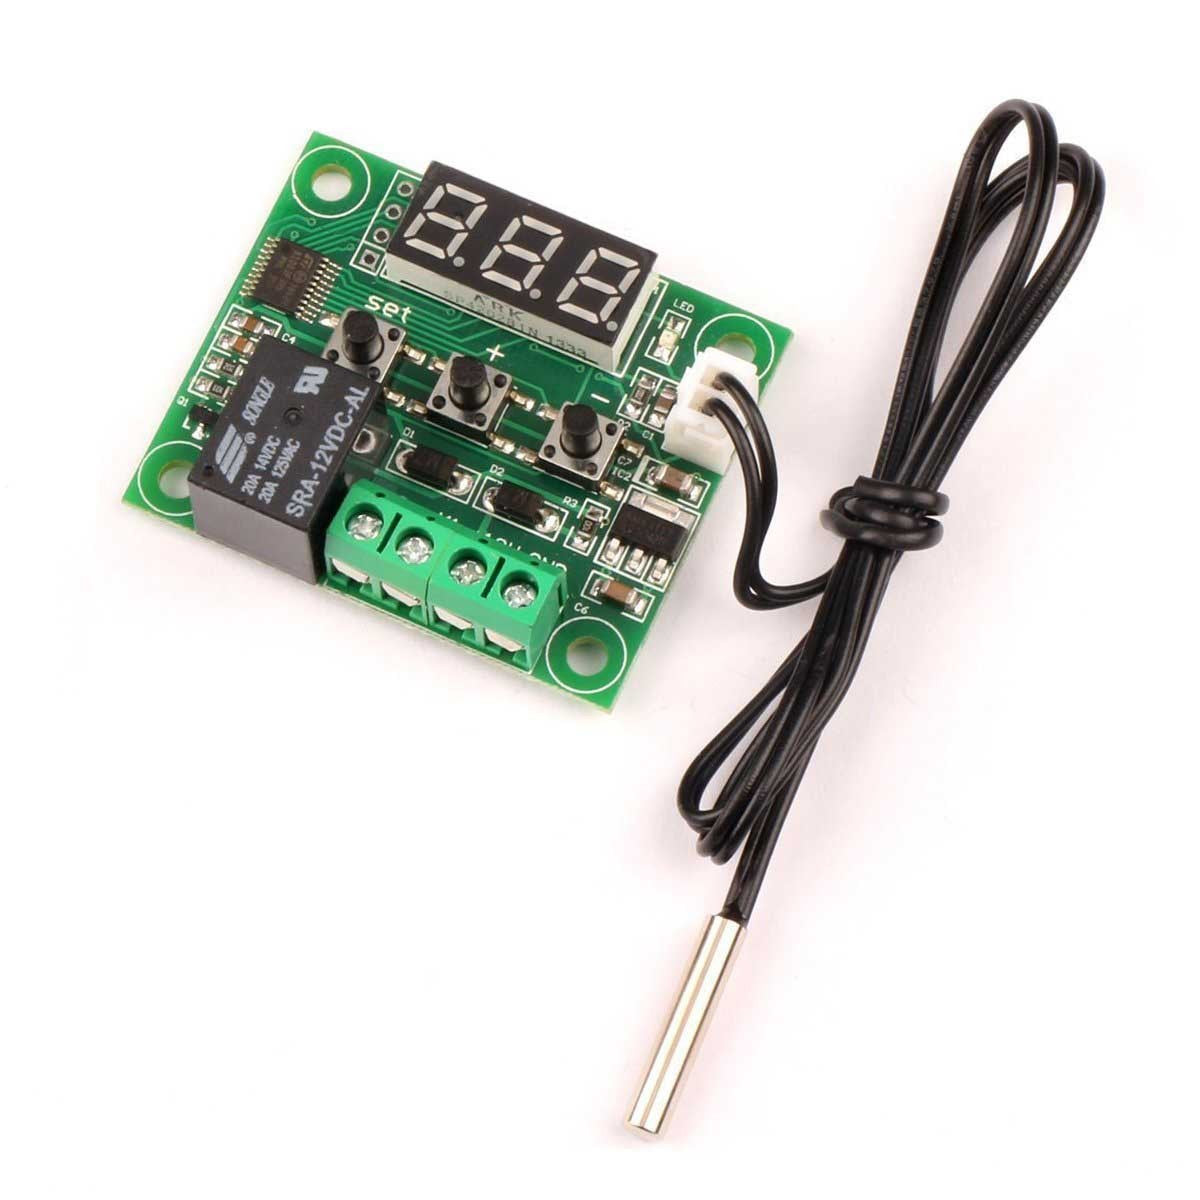 https://www pcb-hero com/ daily https://www pcb-hero com/products